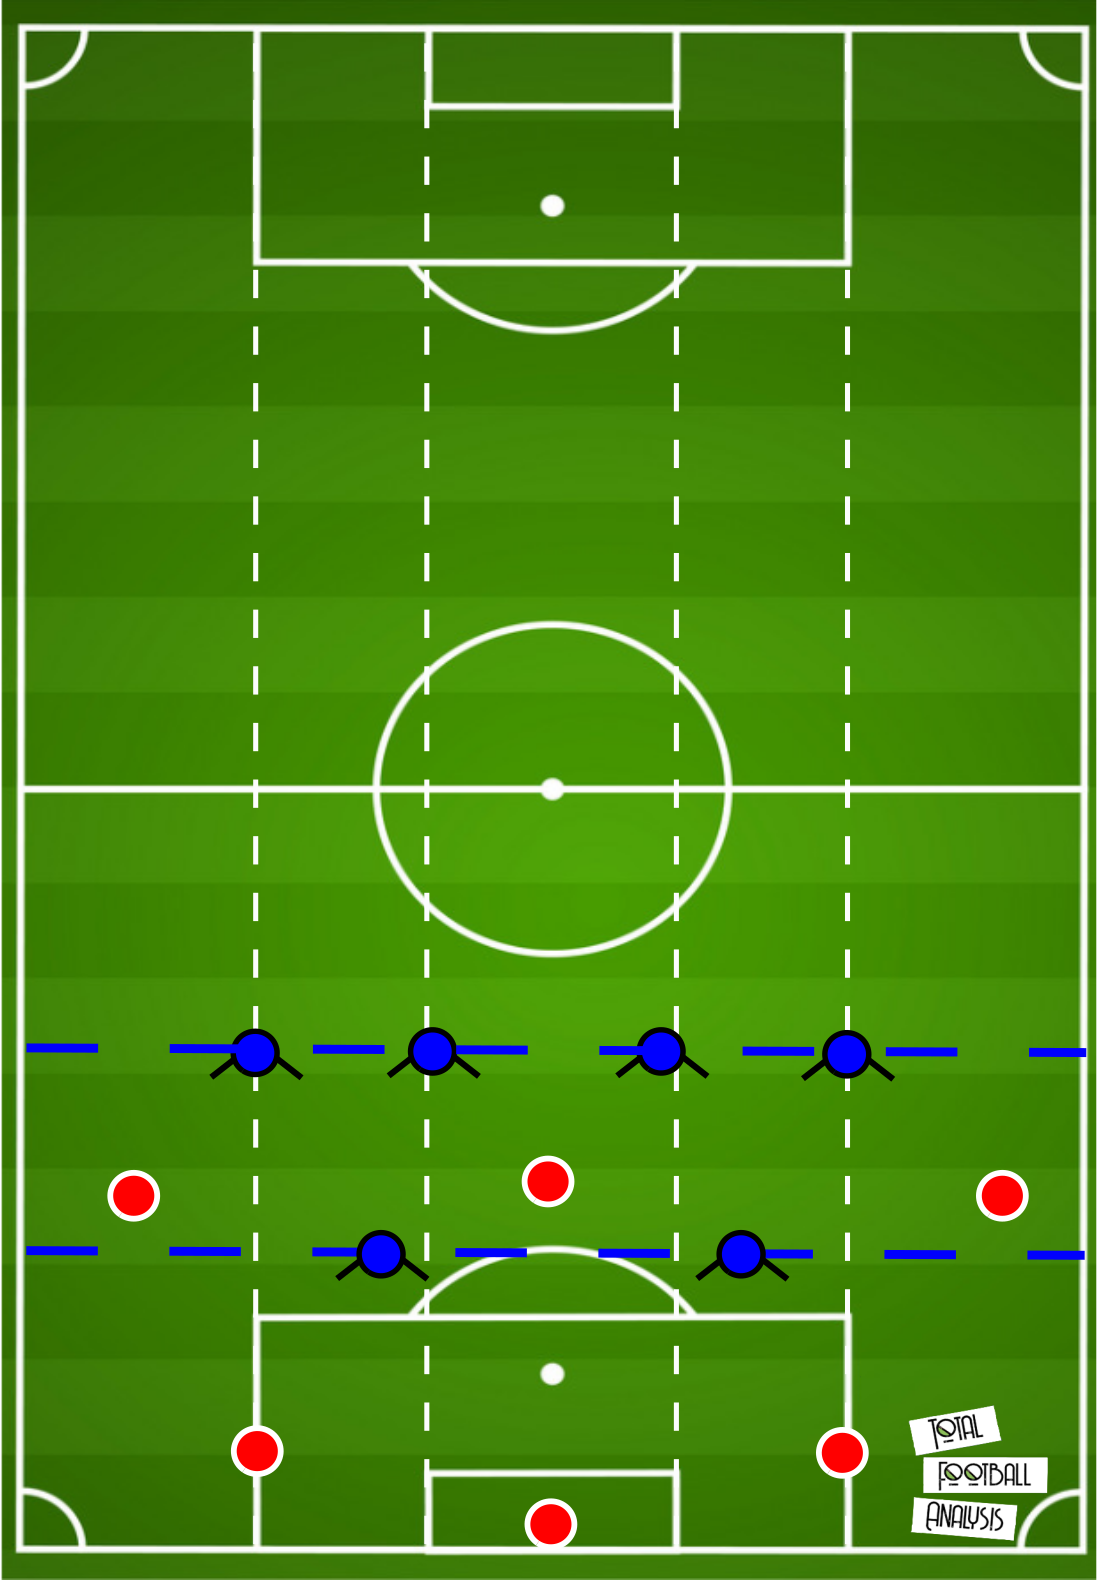 FC Nordsjaeland: A different way of teaching the game- tactical analysis tactics